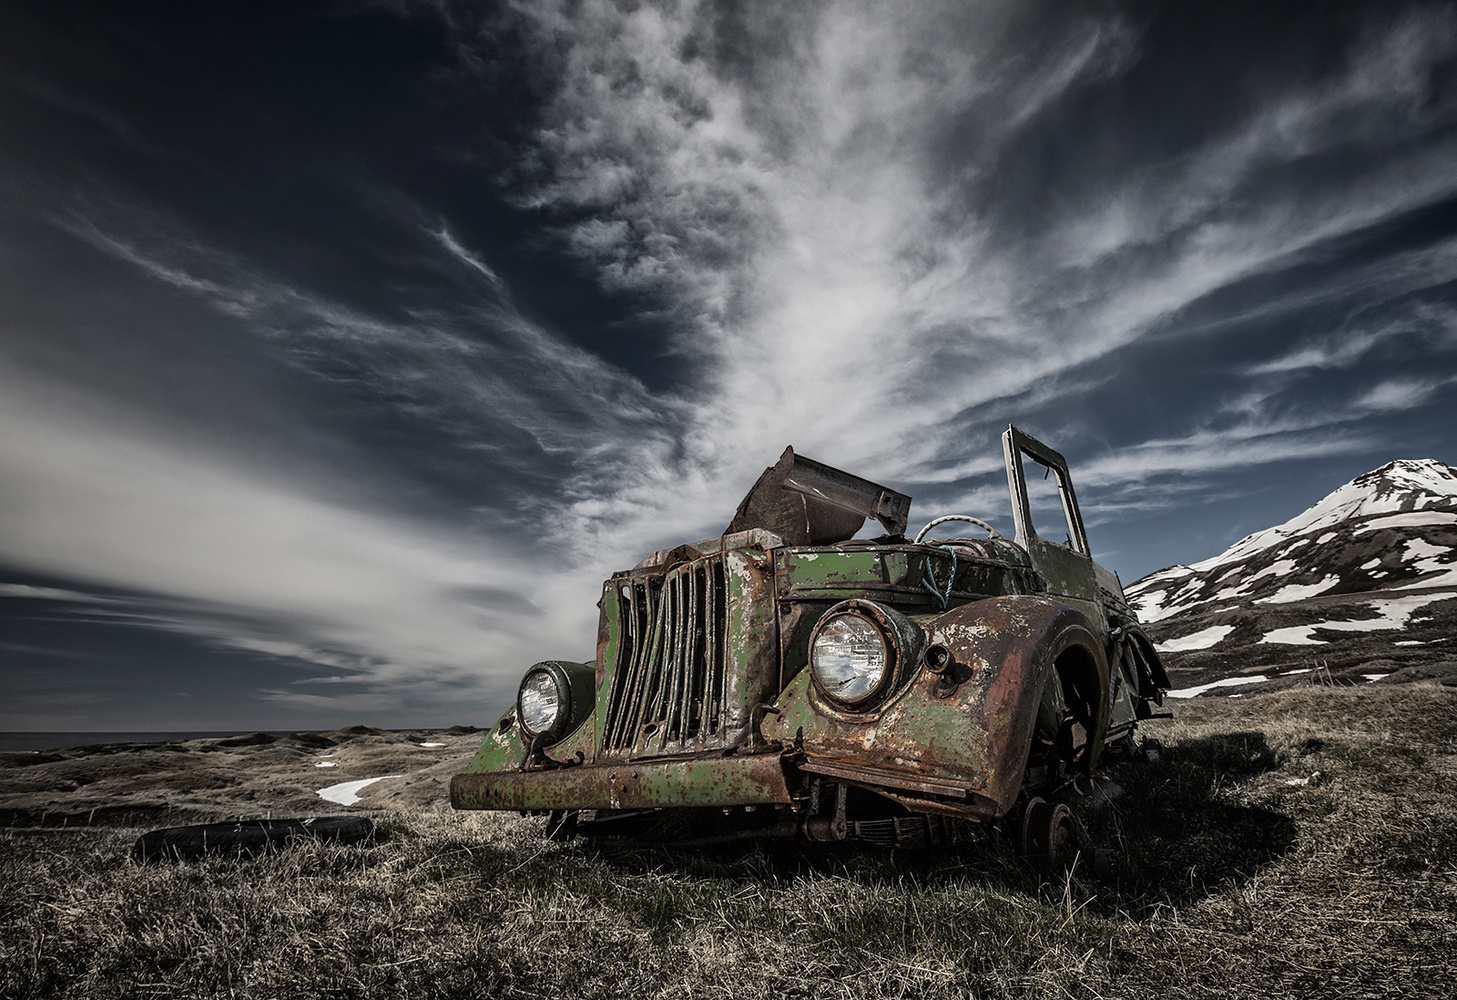 The Old Russian Jeep by Bragi Ingibergsson - BRIN